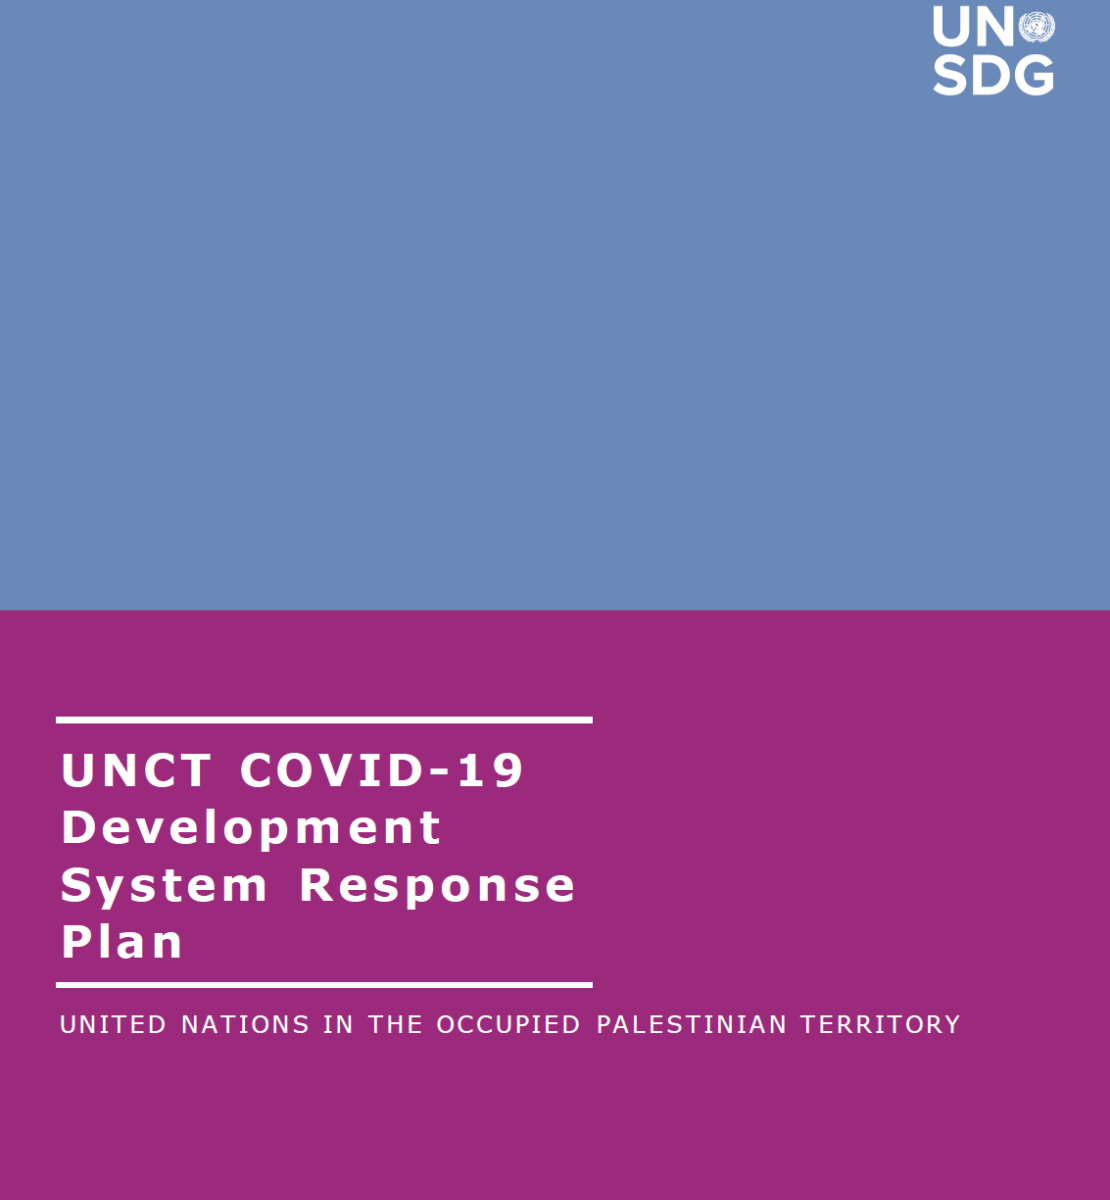 """Cover shows the title """"UNCT COVID-19 Development System Response Plan for Occupied Palestinian Territory"""" over blue and purple background."""